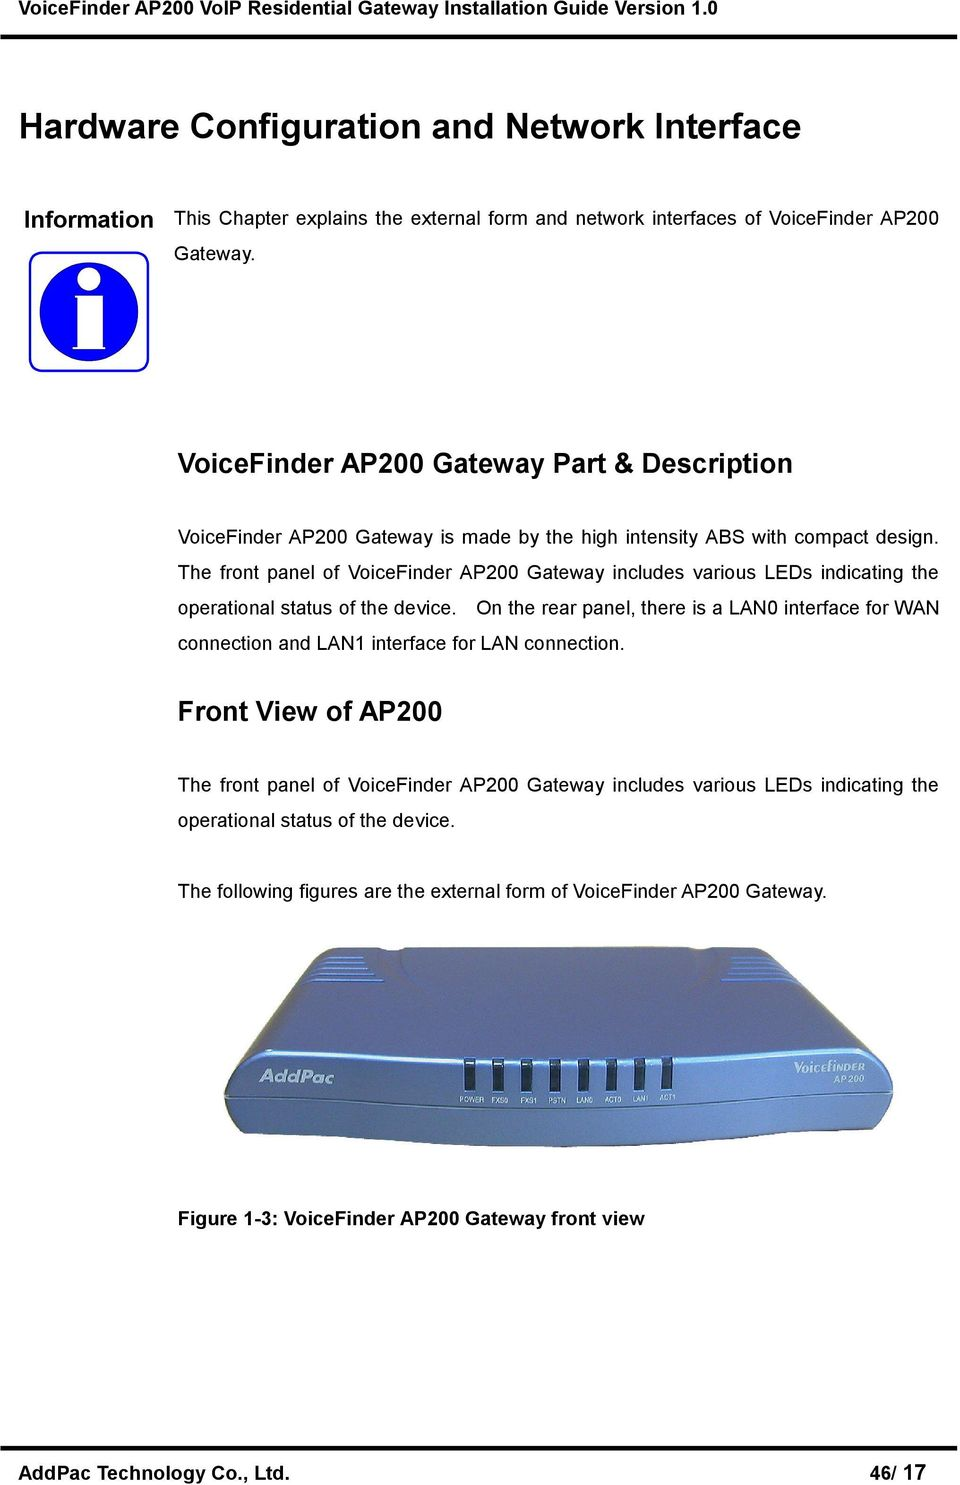 The front panel of VoiceFinder AP200 Gateway includes various LEDs indicating the operational status of the device.